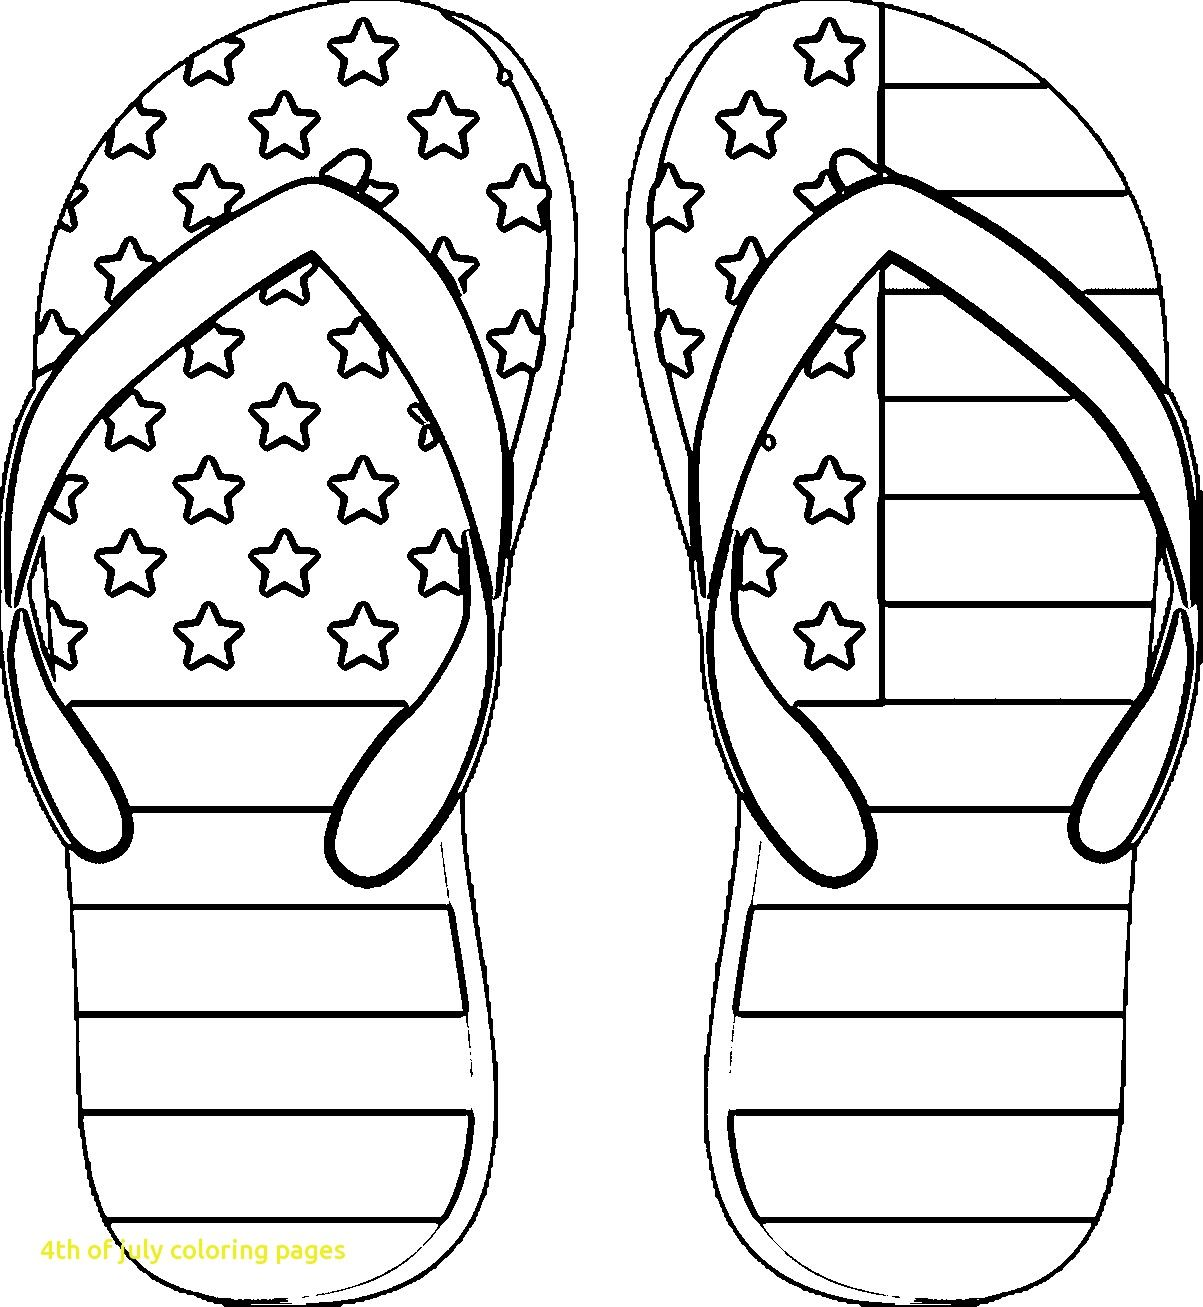 Free Printlable 4th of July Coloring Pages PDF For